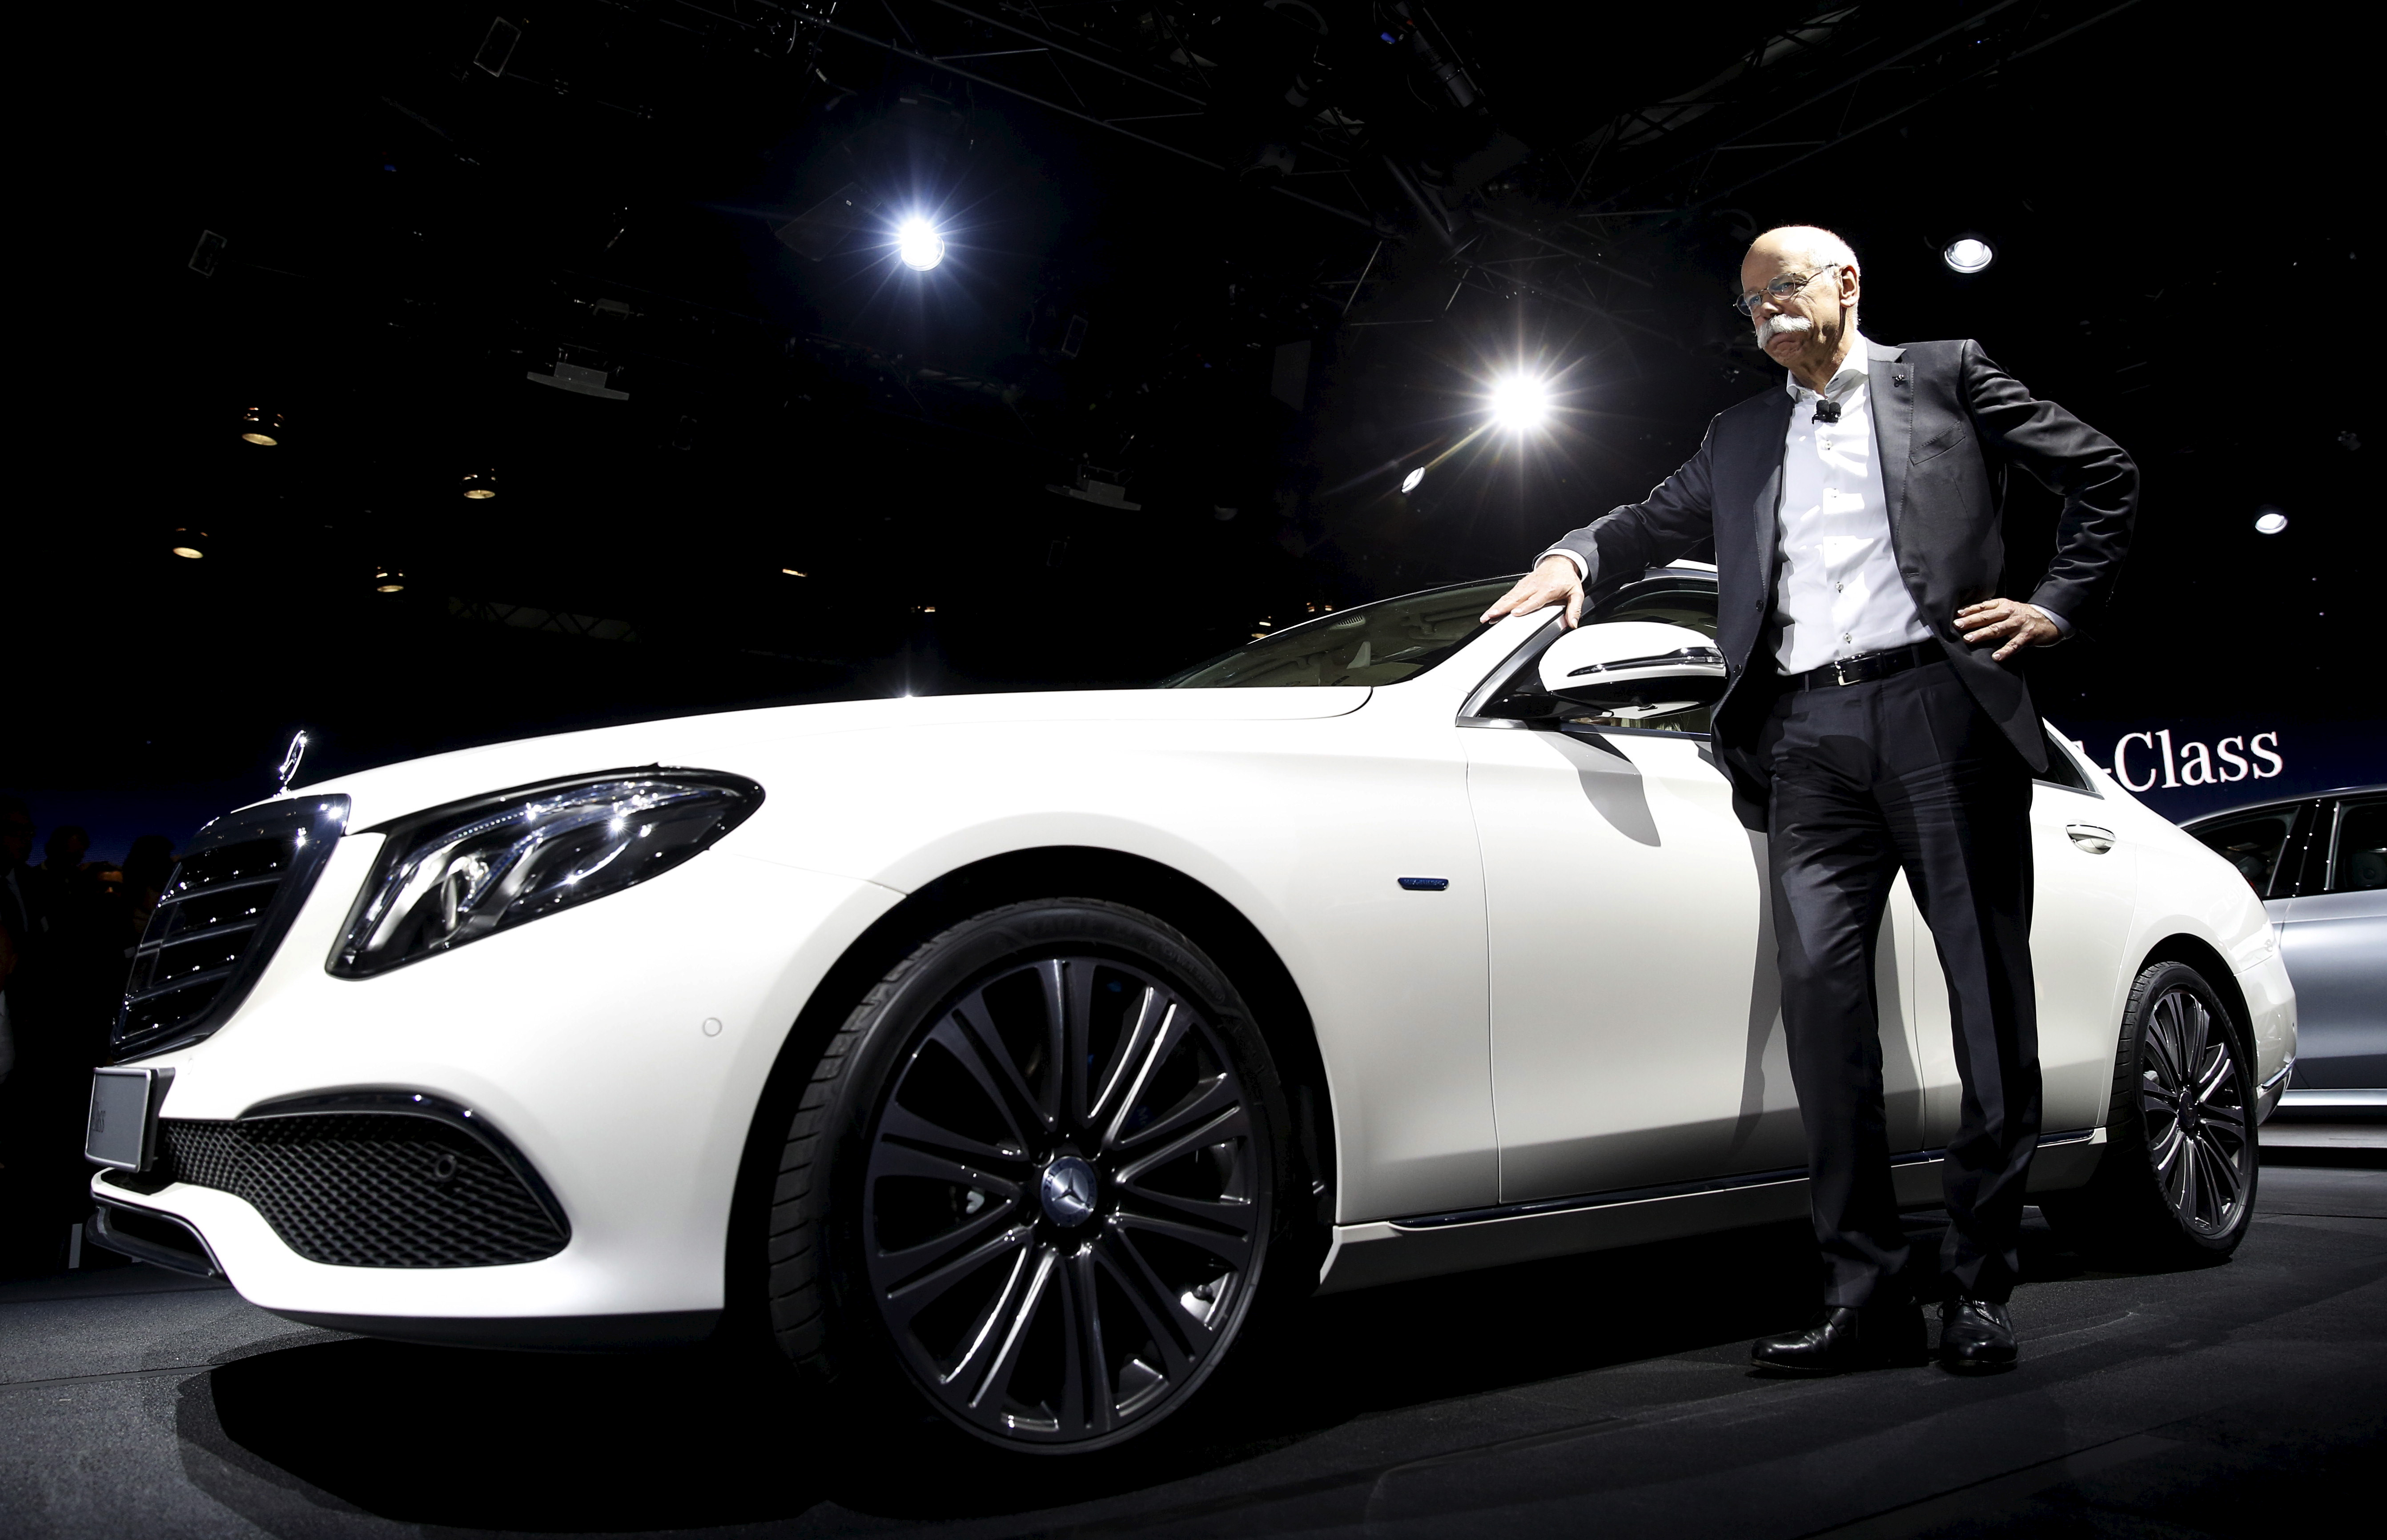 Mercedes Benz Chair Zetsche introduces new Mercedes-Benz E-Class at reception prior to opening of the North American International Auto Show in Detroit